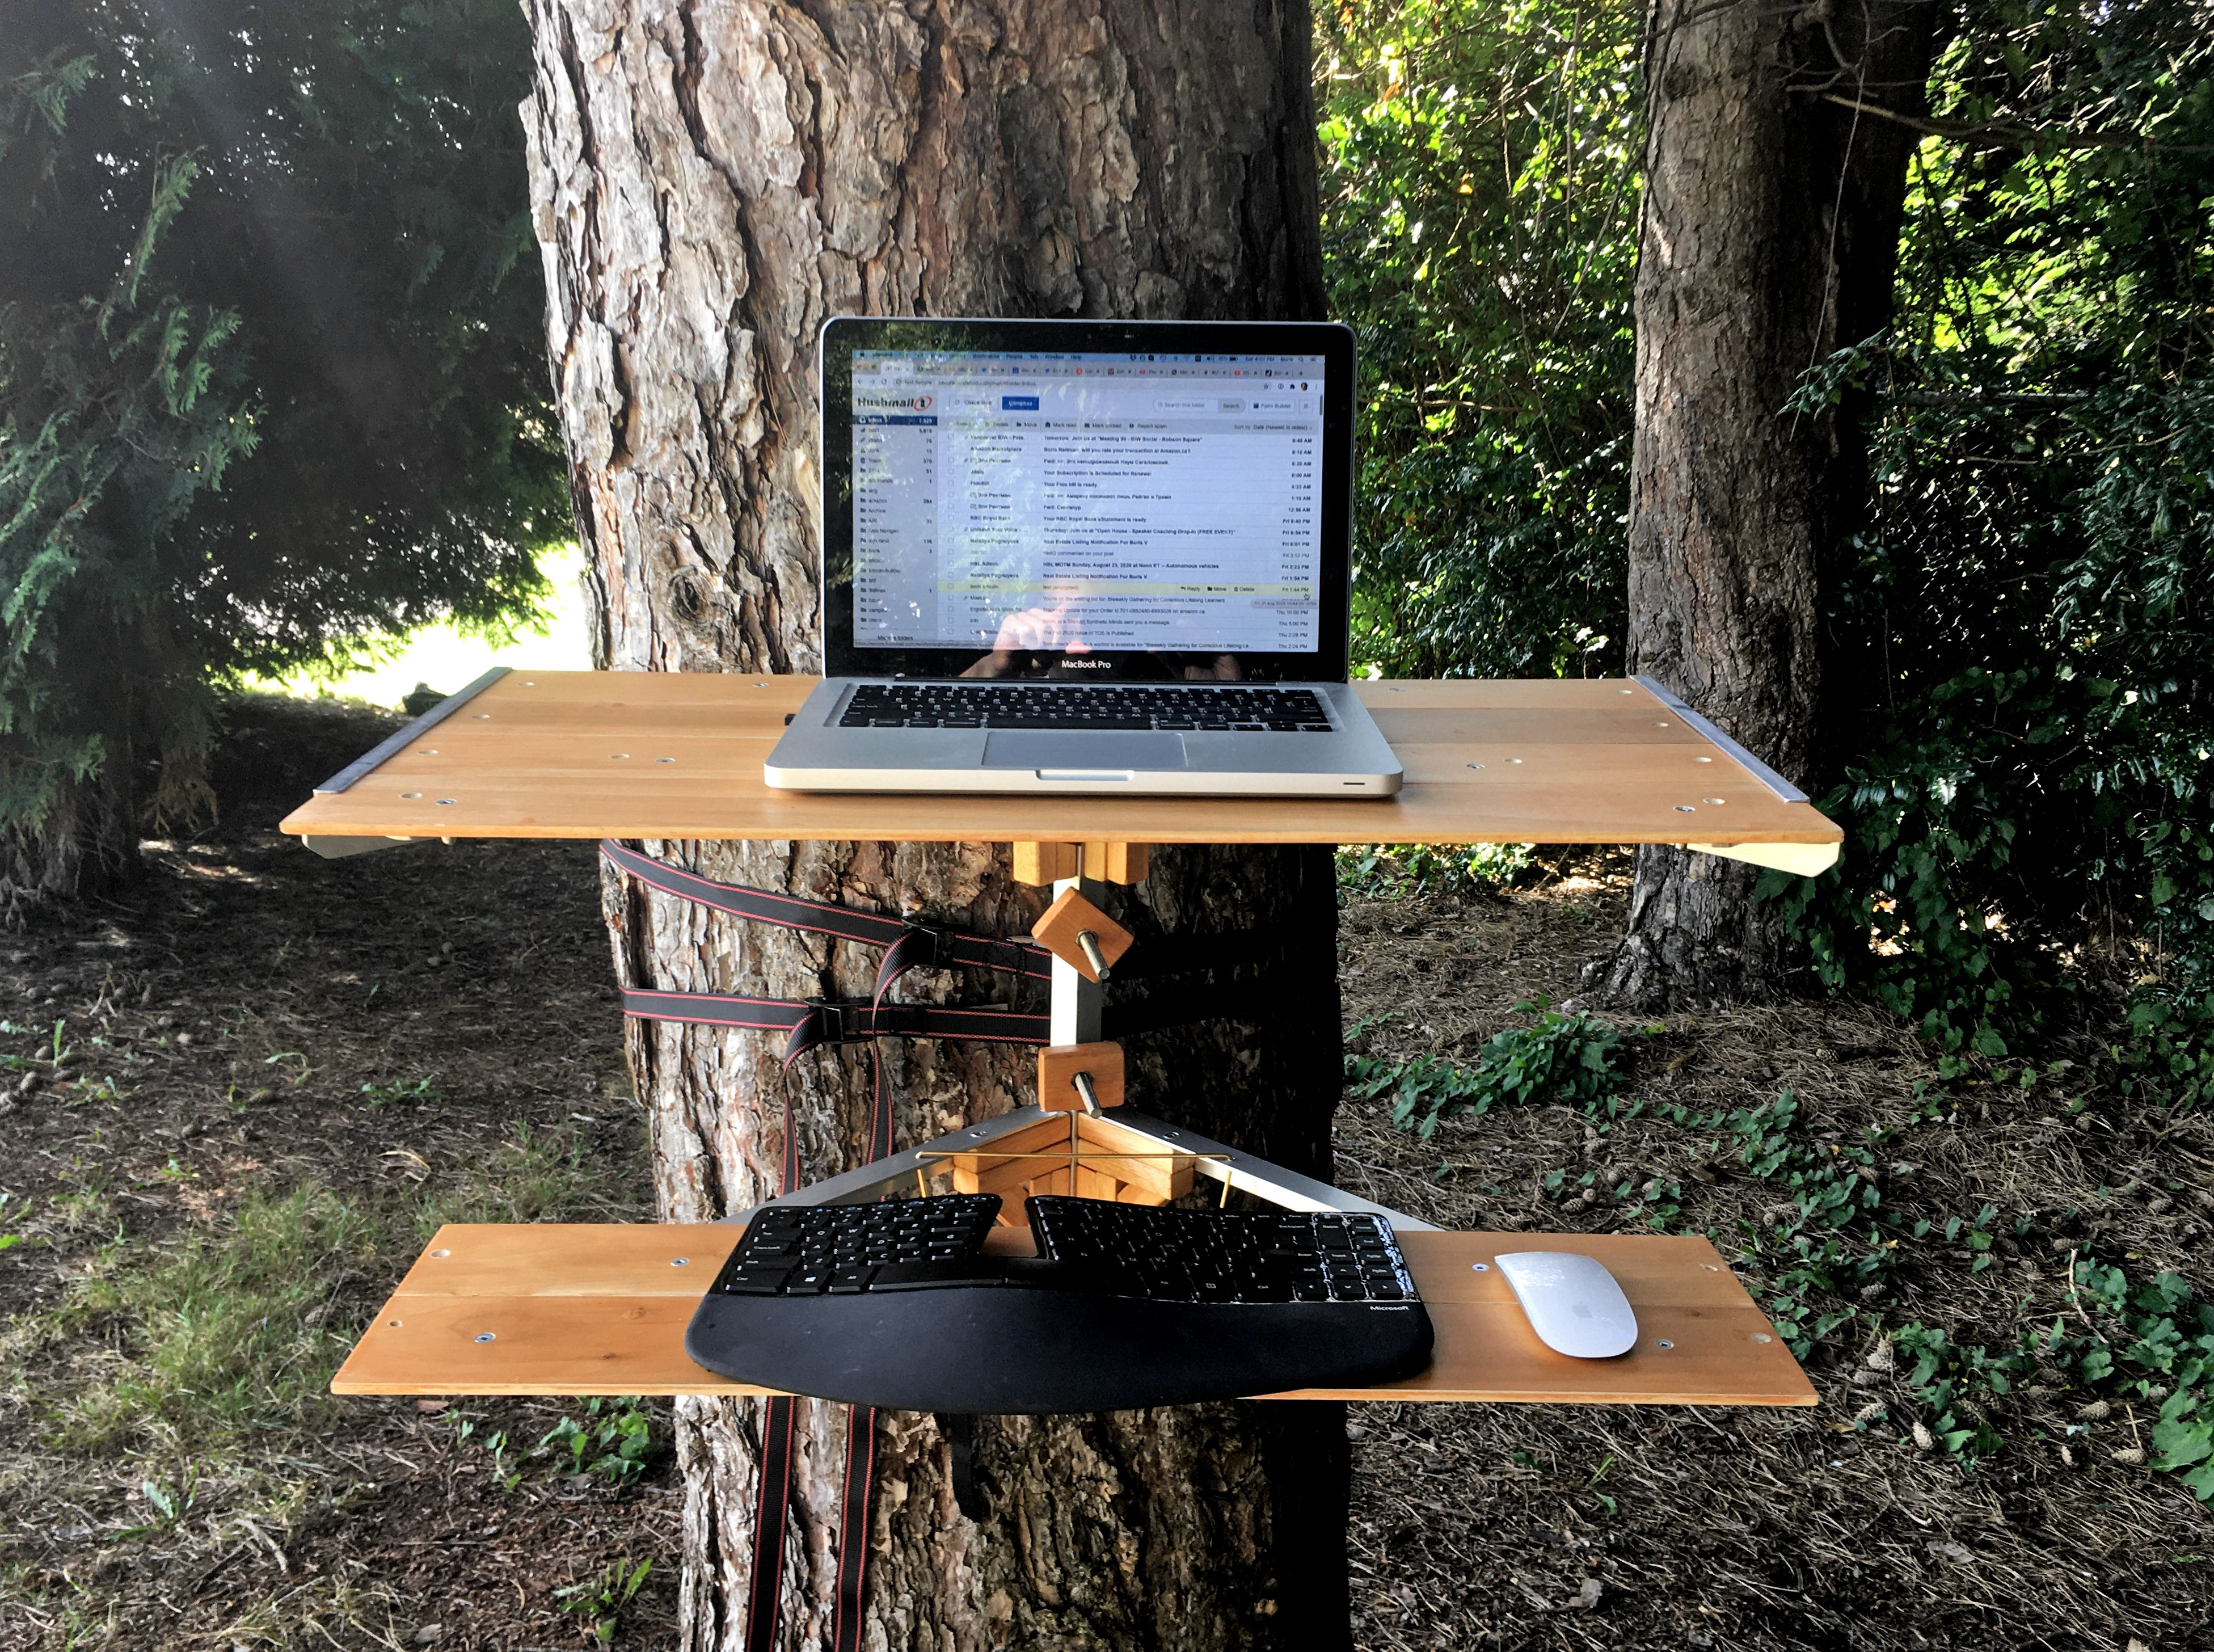 /code-outside-the-outdoor-standing-desk-2z1k3tgw feature image